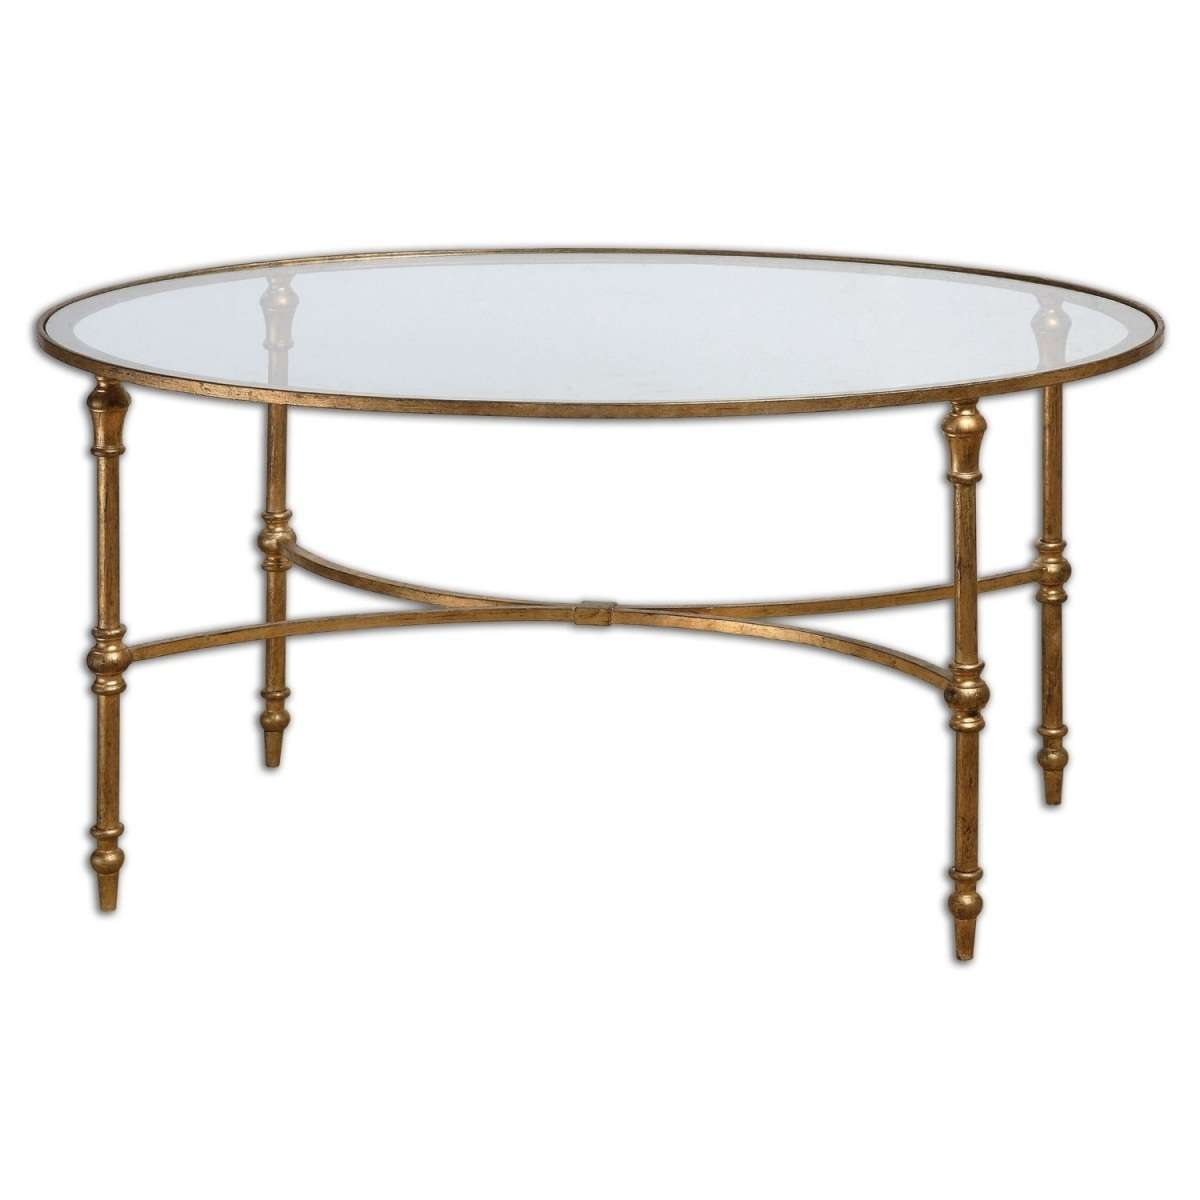 Fashionable Circular Glass Coffee Tables Throughout Coffee Tables : Astonishing Square Coffee Table With Drawers (View 11 of 20)